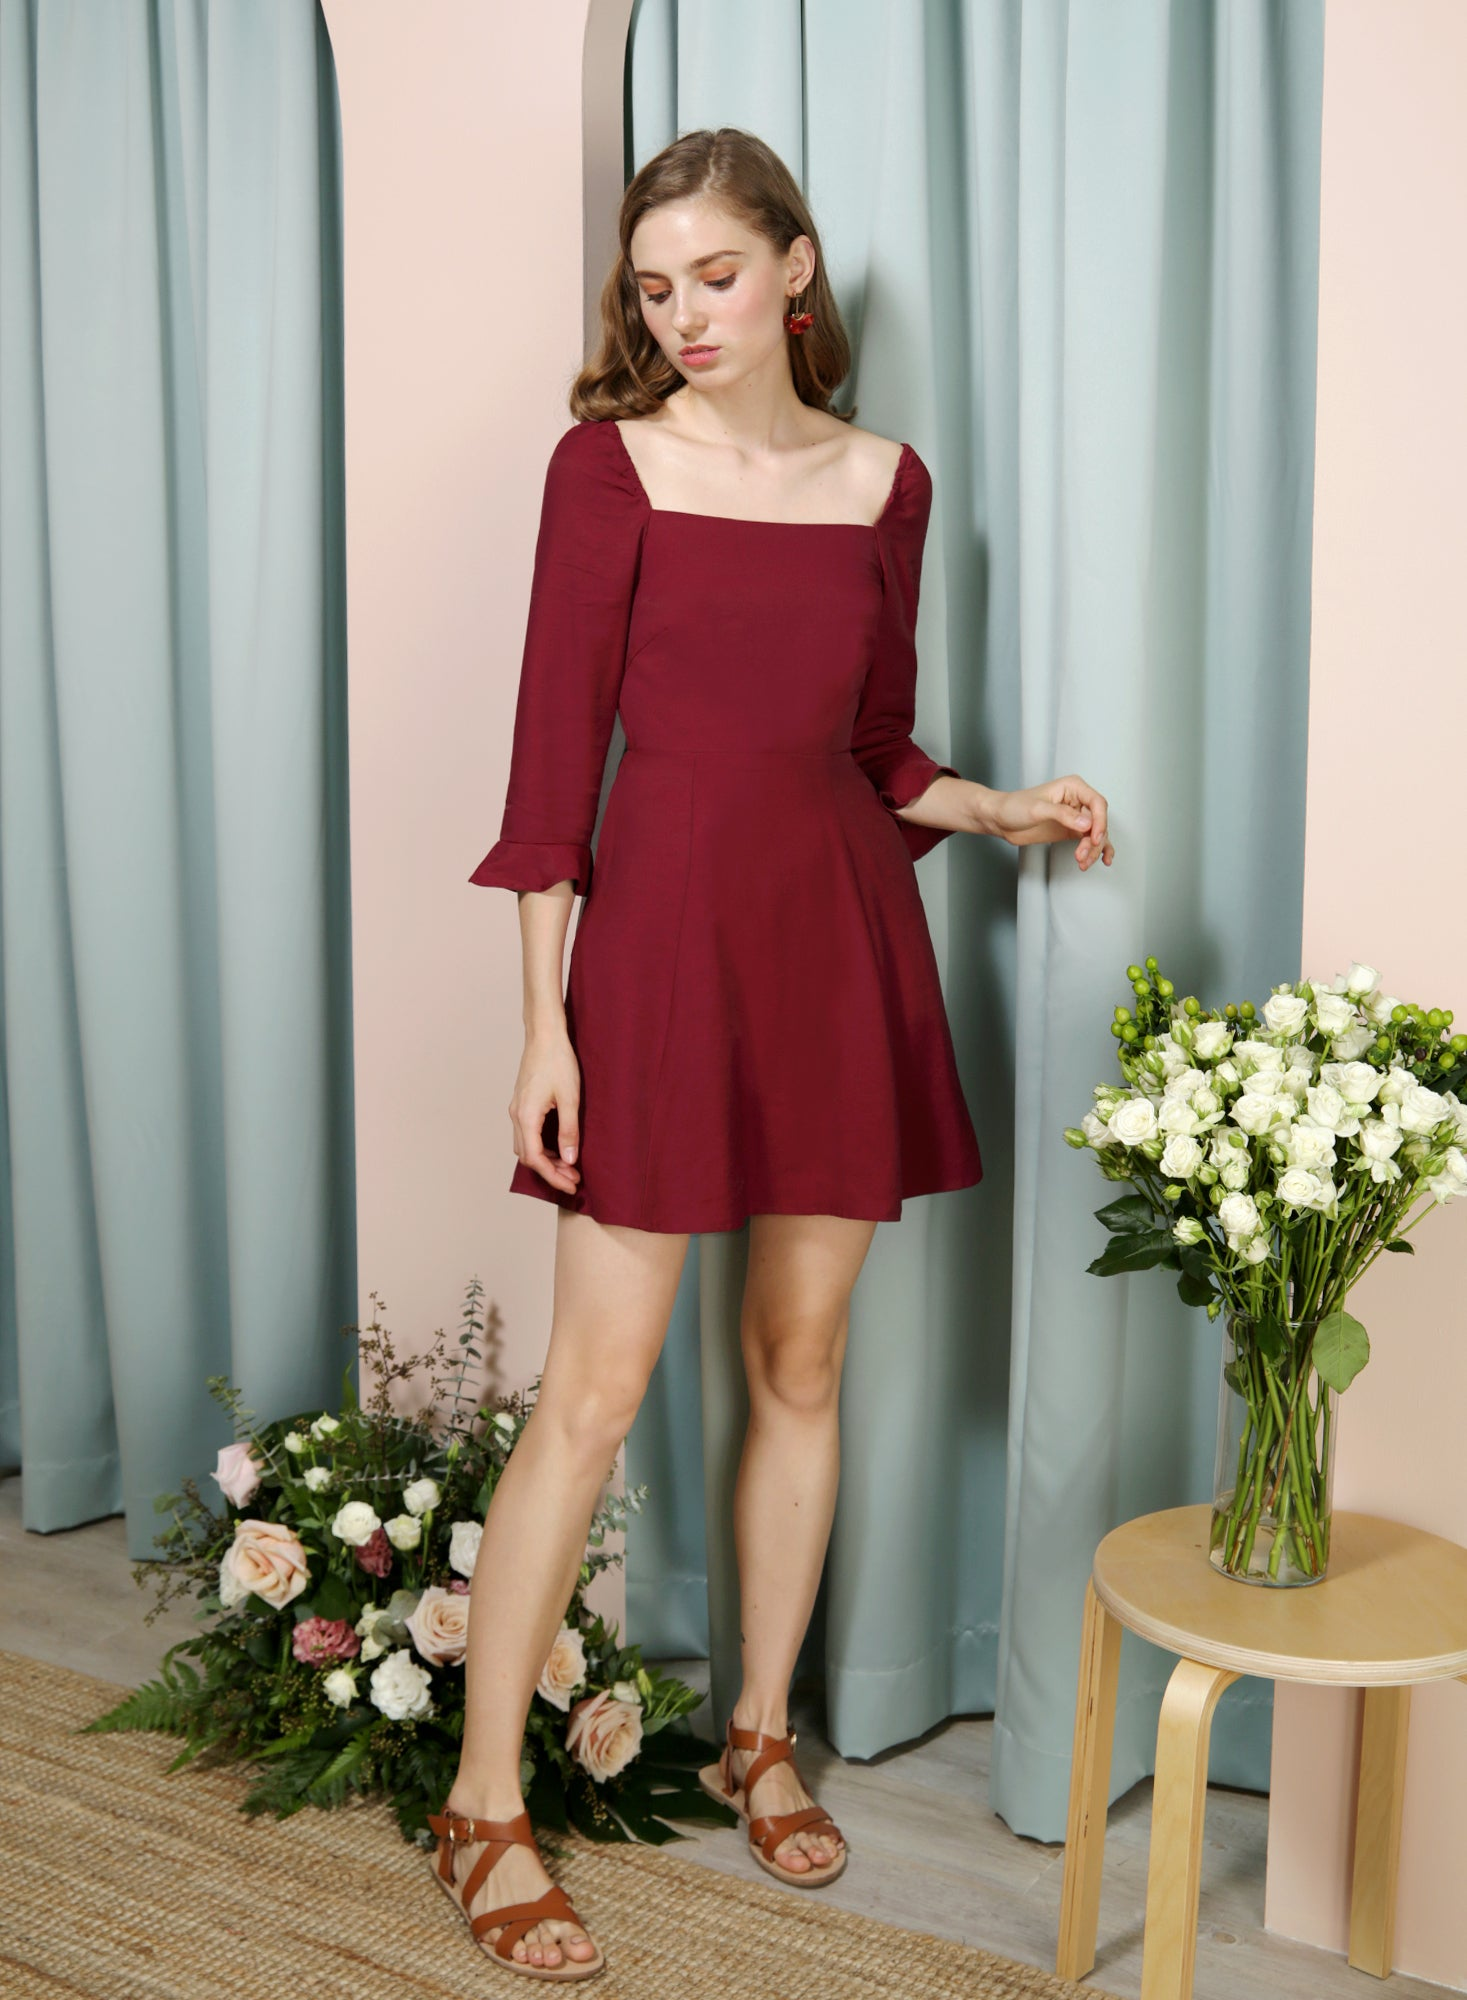 JOYOUS Square Neckline Dress (Wine) at $ 39.90 only sold at And Well Dressed Online Fashion Store Singapore